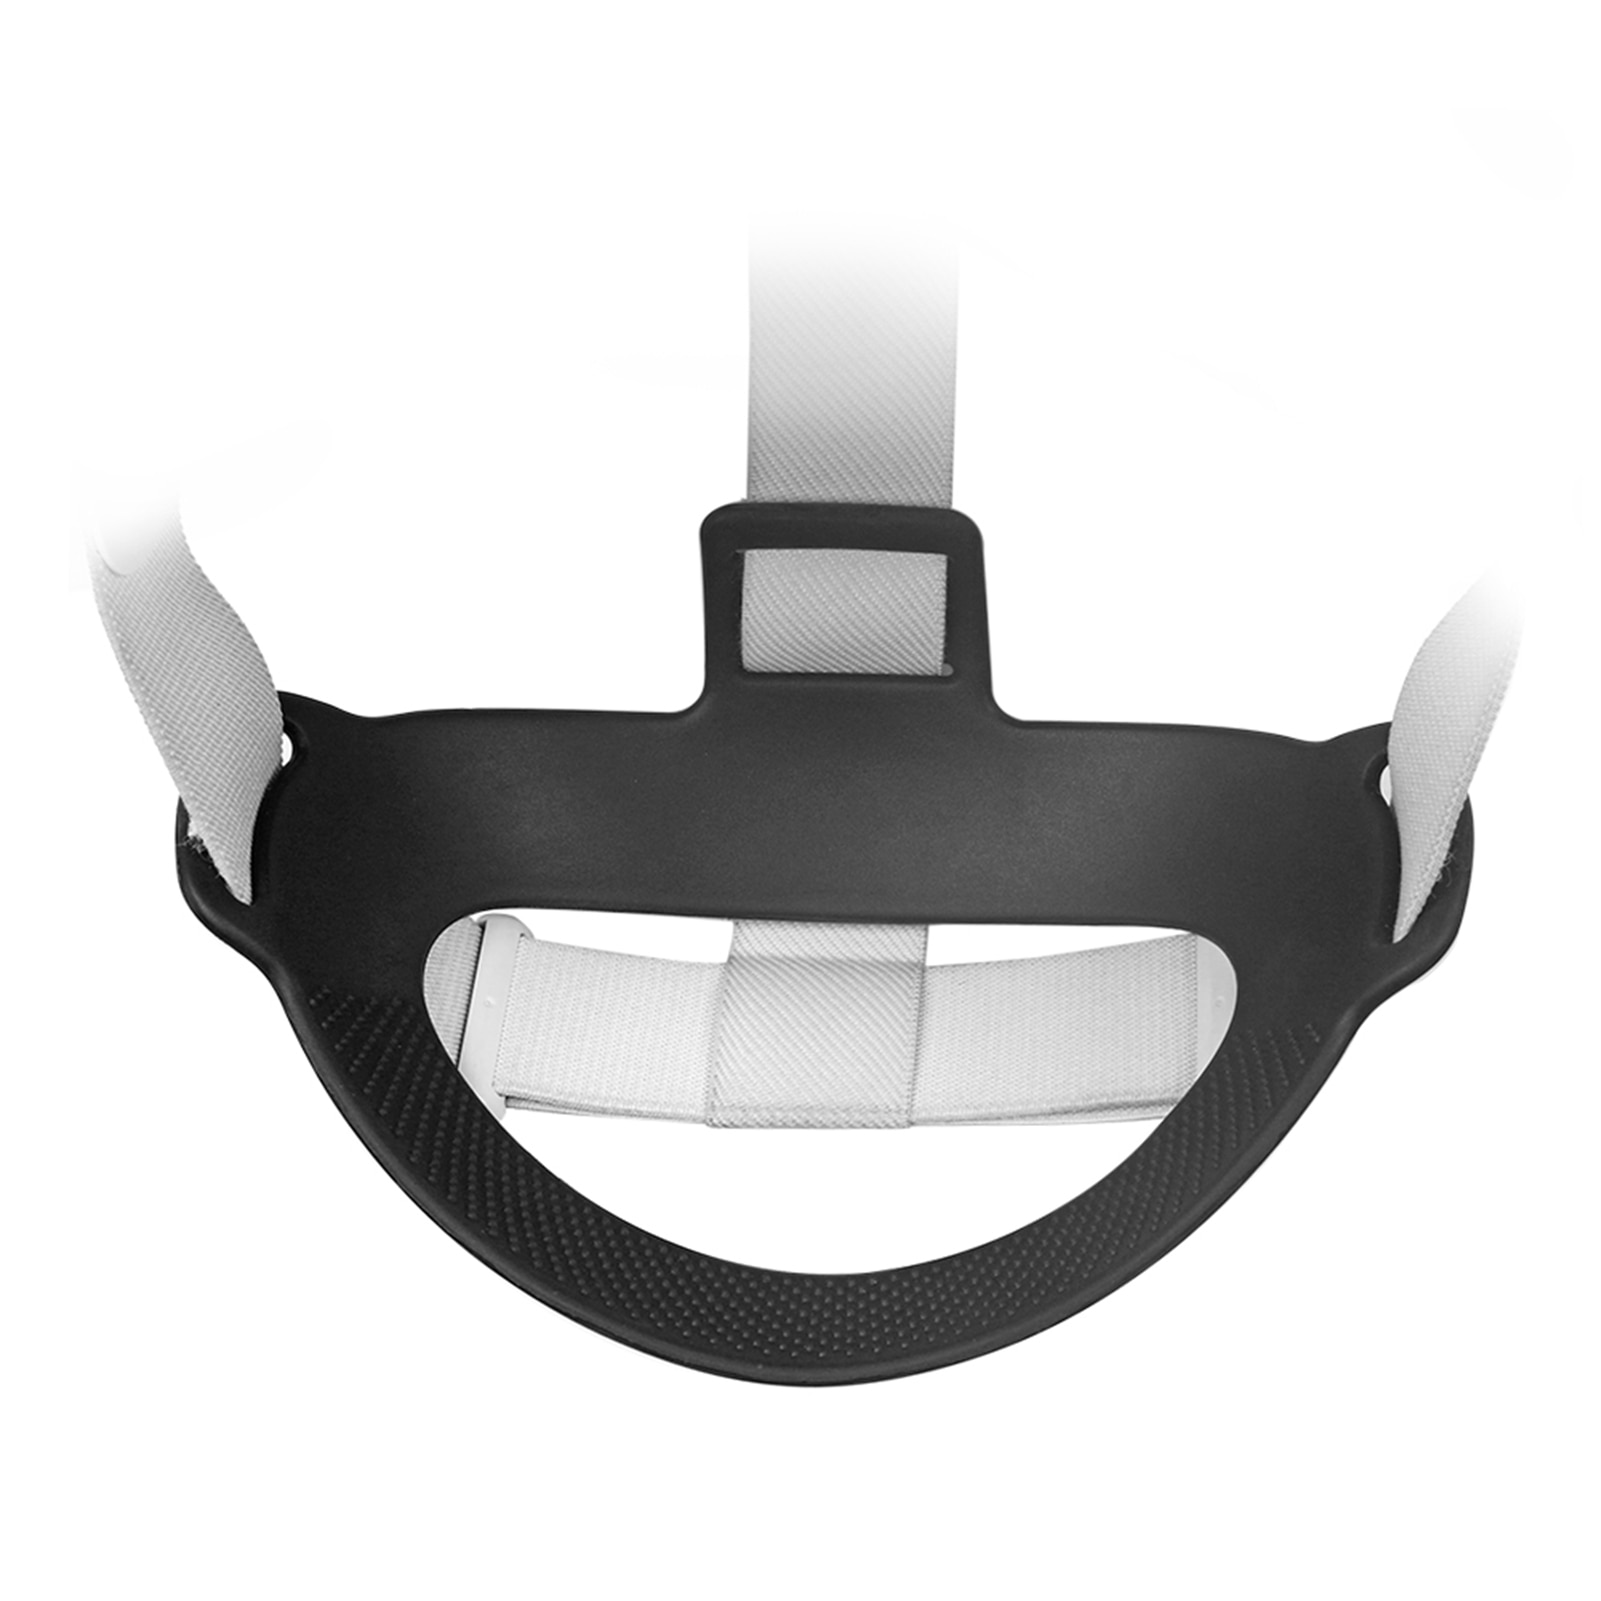 For Oculus Quest 2 Headband Cushion Removable Professional VR Headsets Pad TPU Pressure-relieving Fixing Frame For Quest2